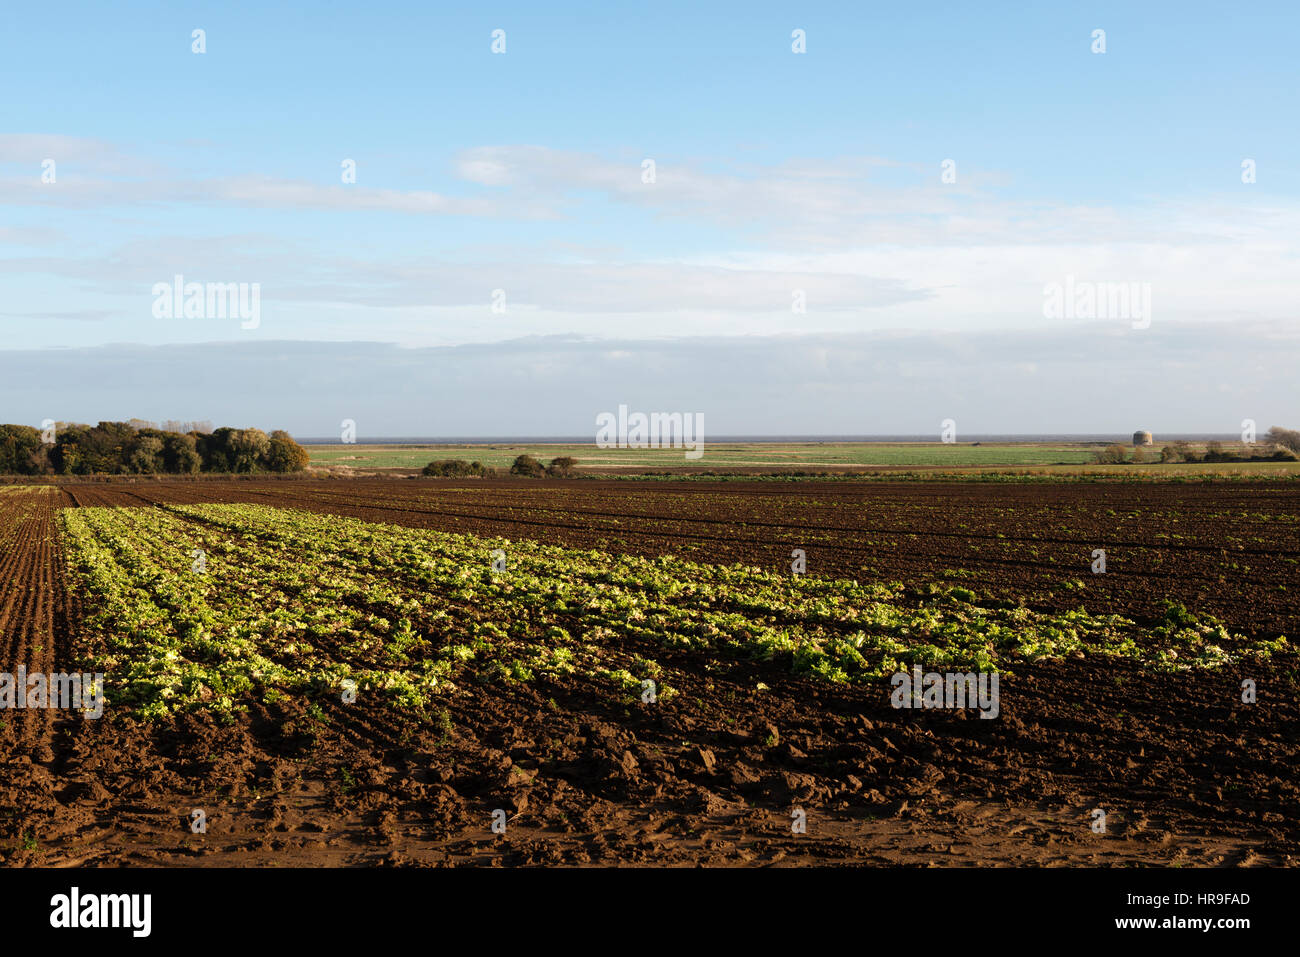 Remains of lettuce harvested in large field, Alderton, Suffolk, UK. Stock Photo